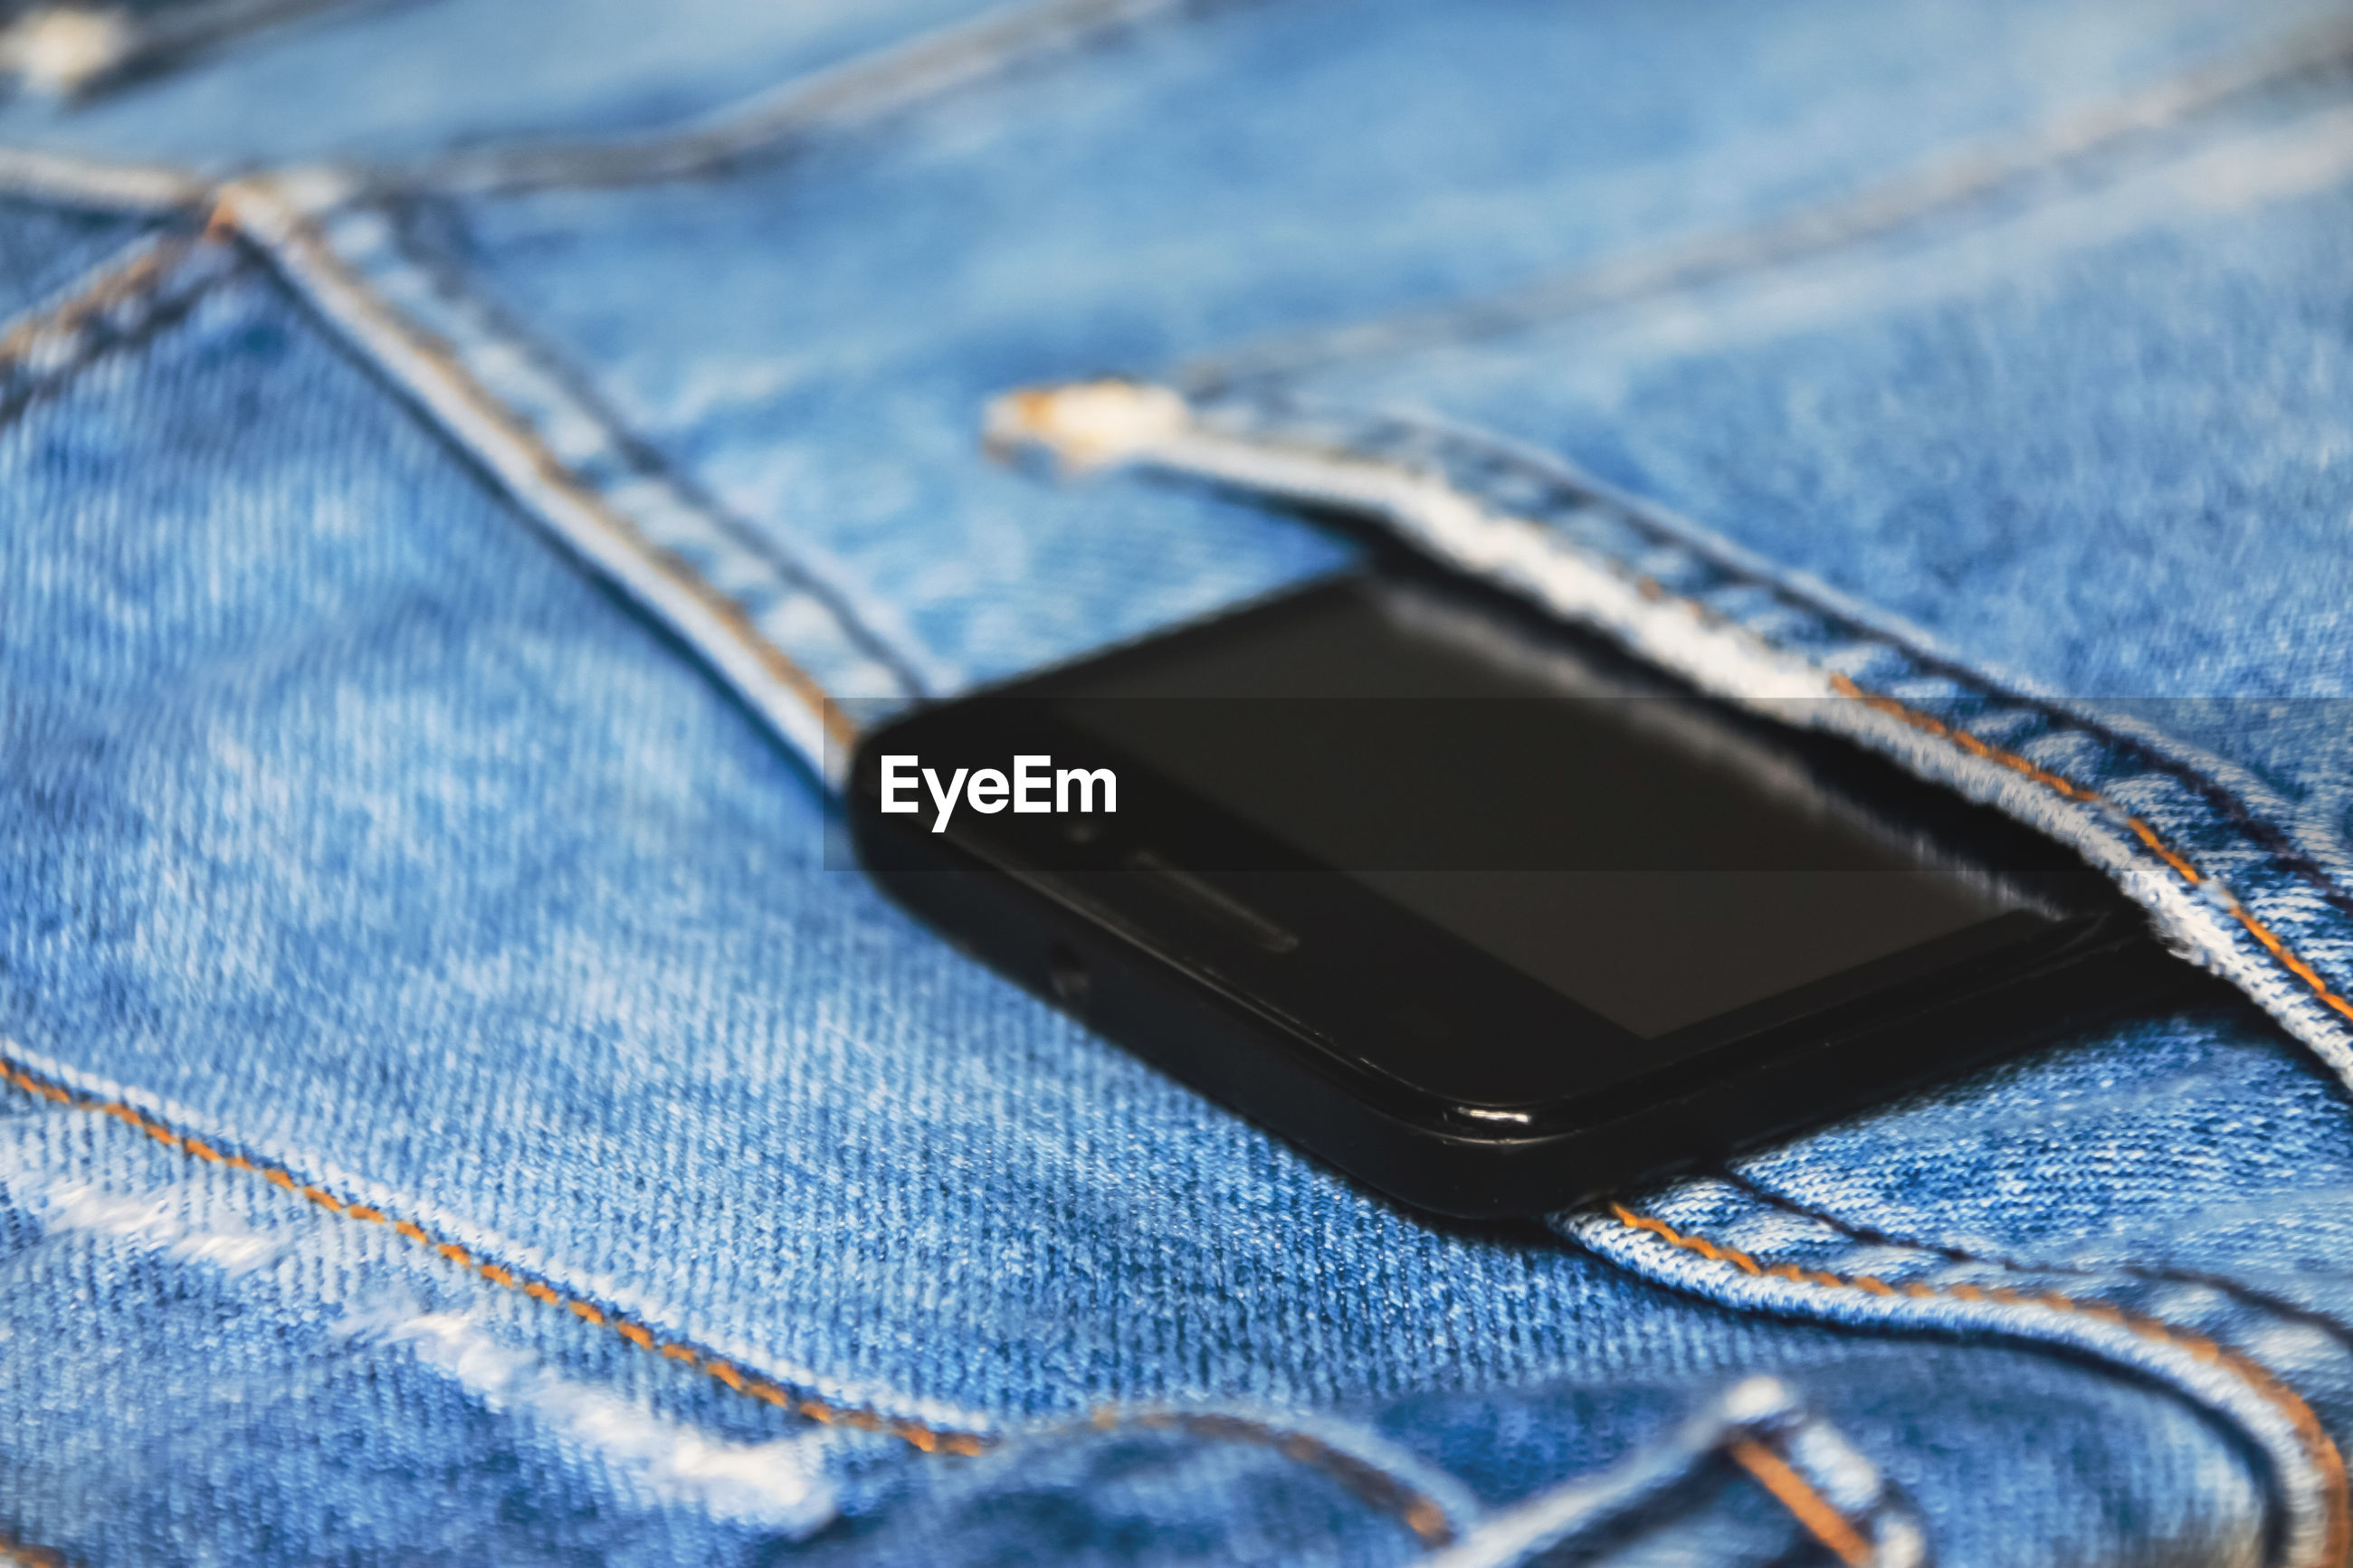 Close-up of phone in jeans pocket